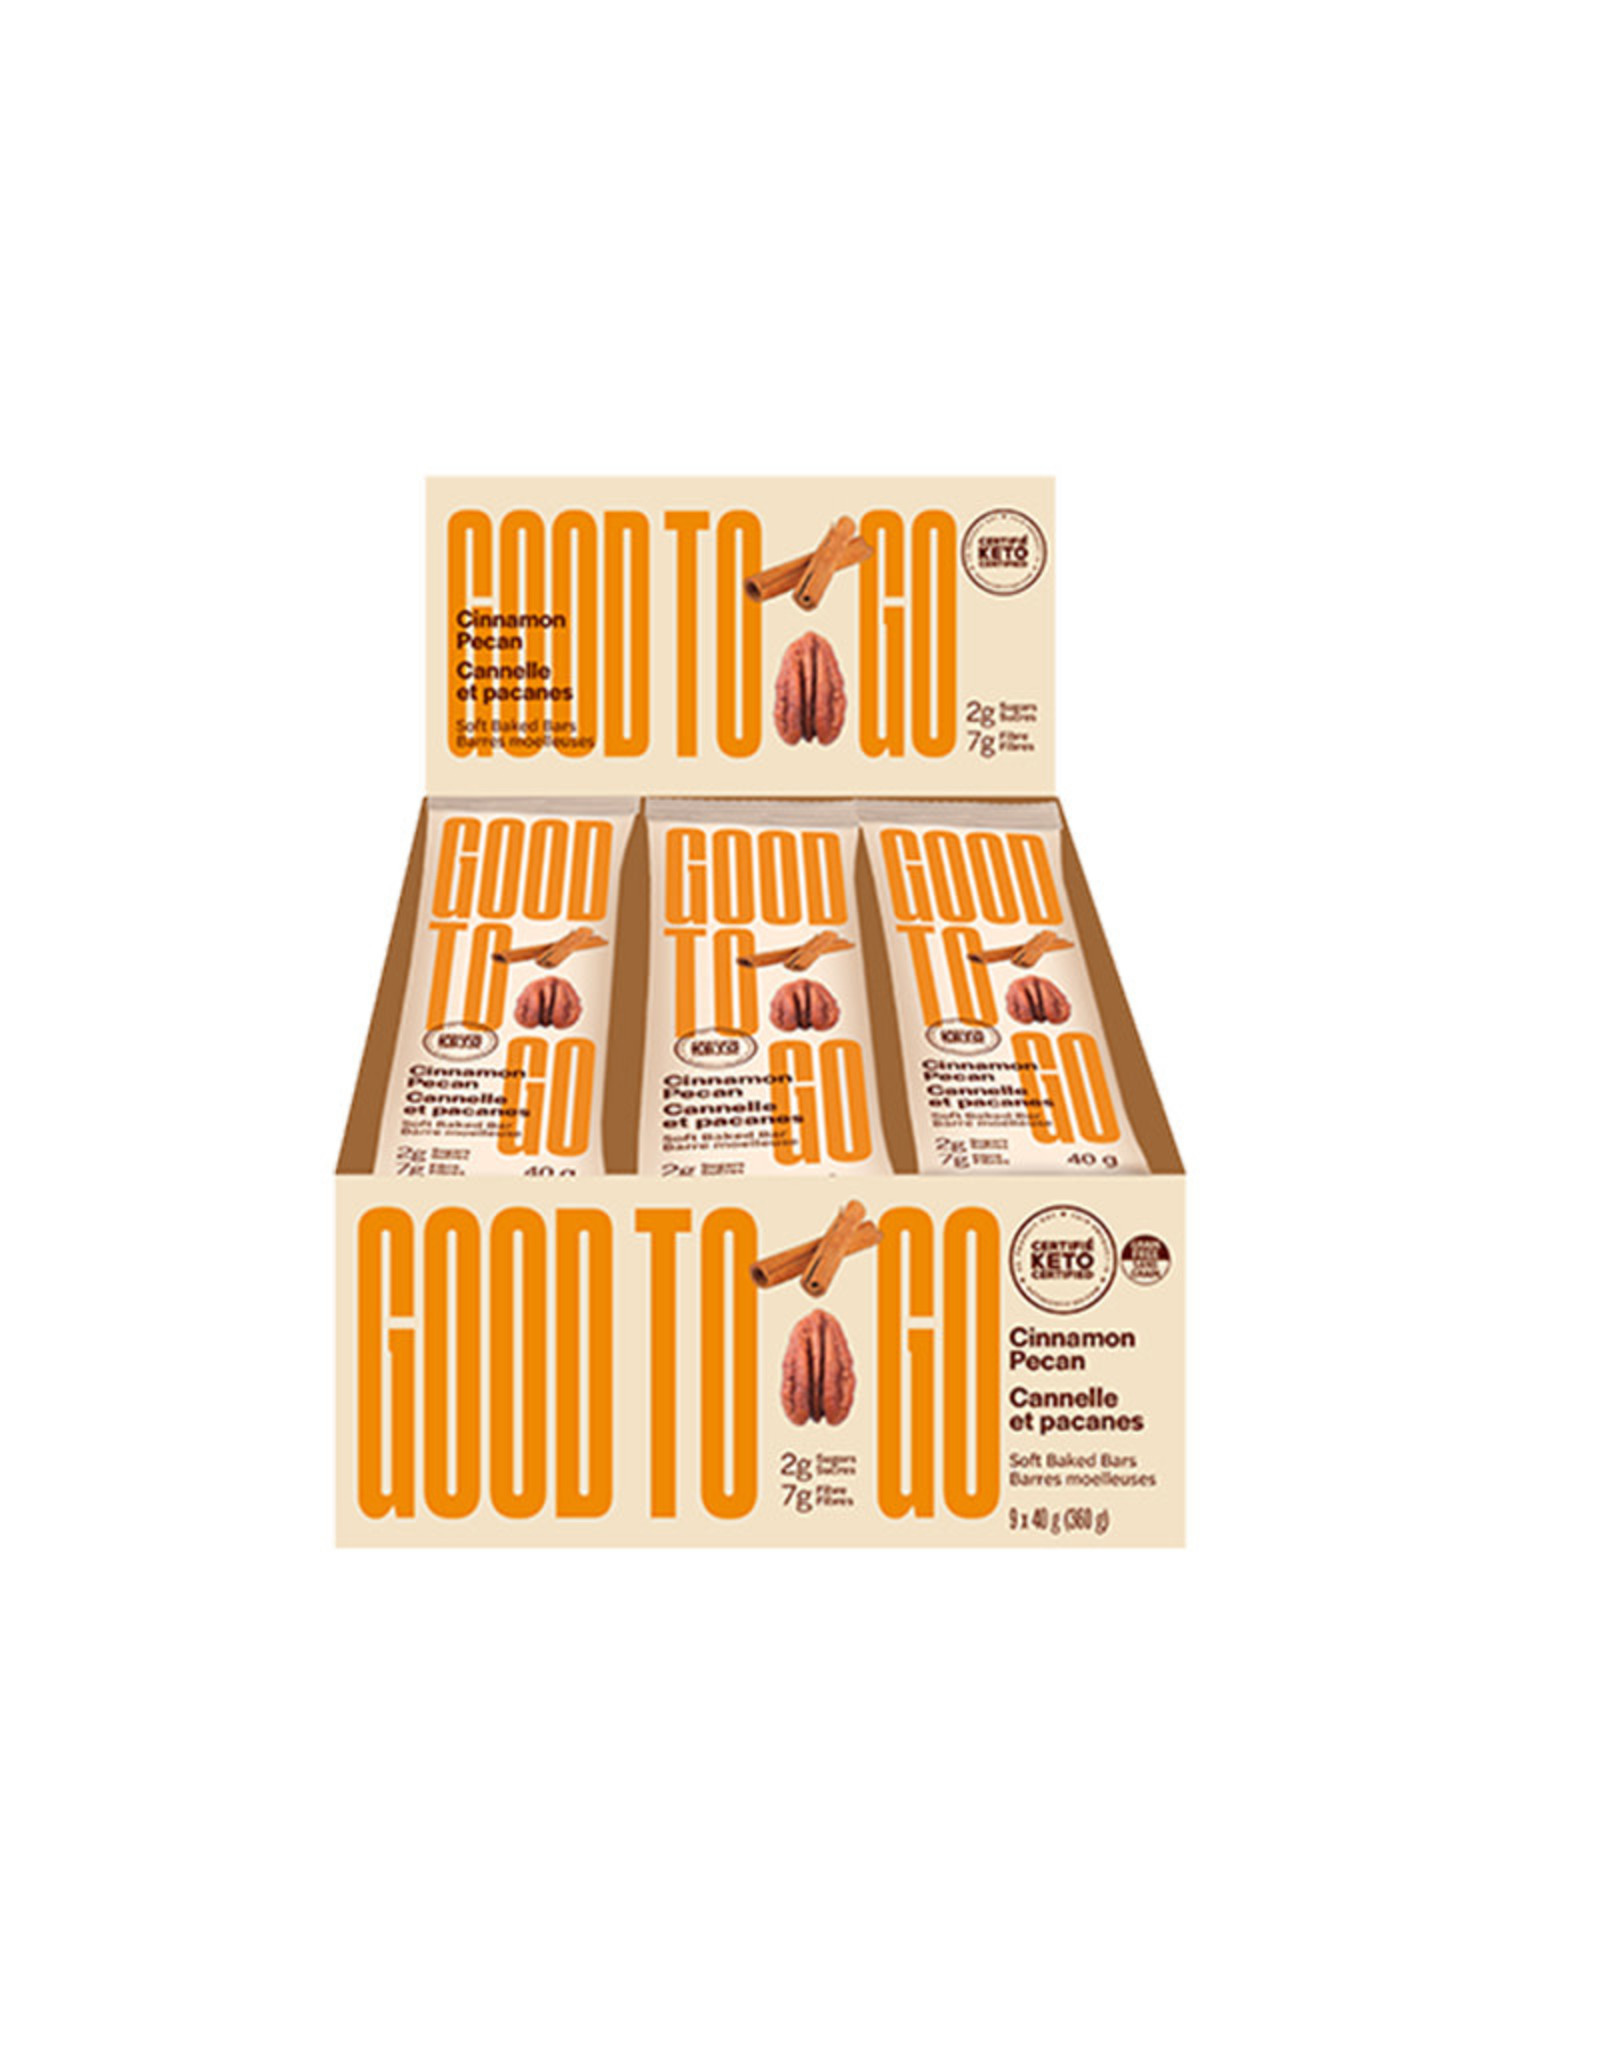 Good To Go Good To Go - Keto Bar, Cinnamon Pecan (Box of 9)